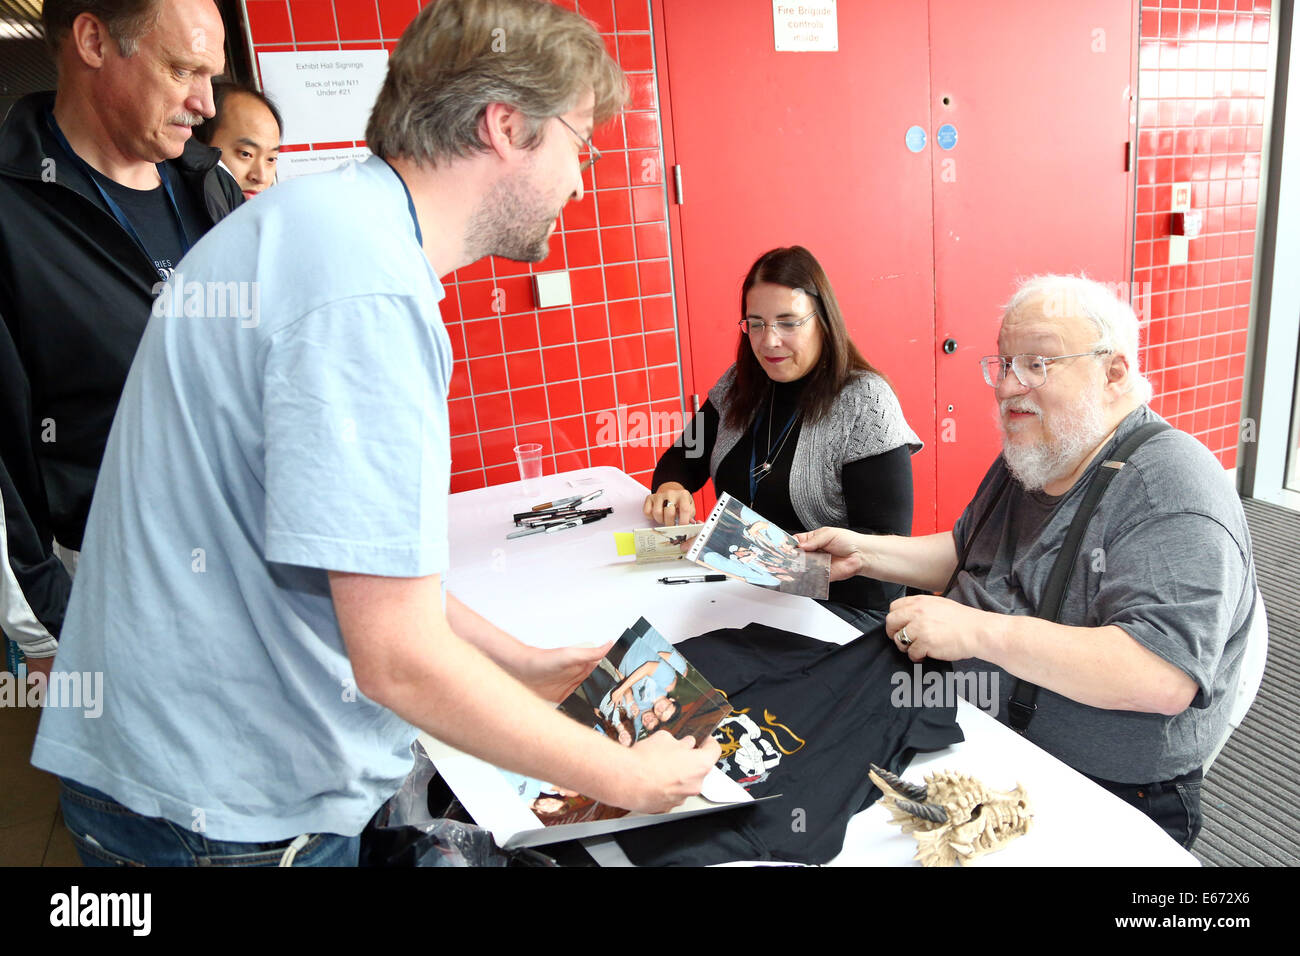 London, UK. 16th August 2014. Game of Thrones author George RR Martin book signing at Loncon 3 the 72nd World Science - Stock Image